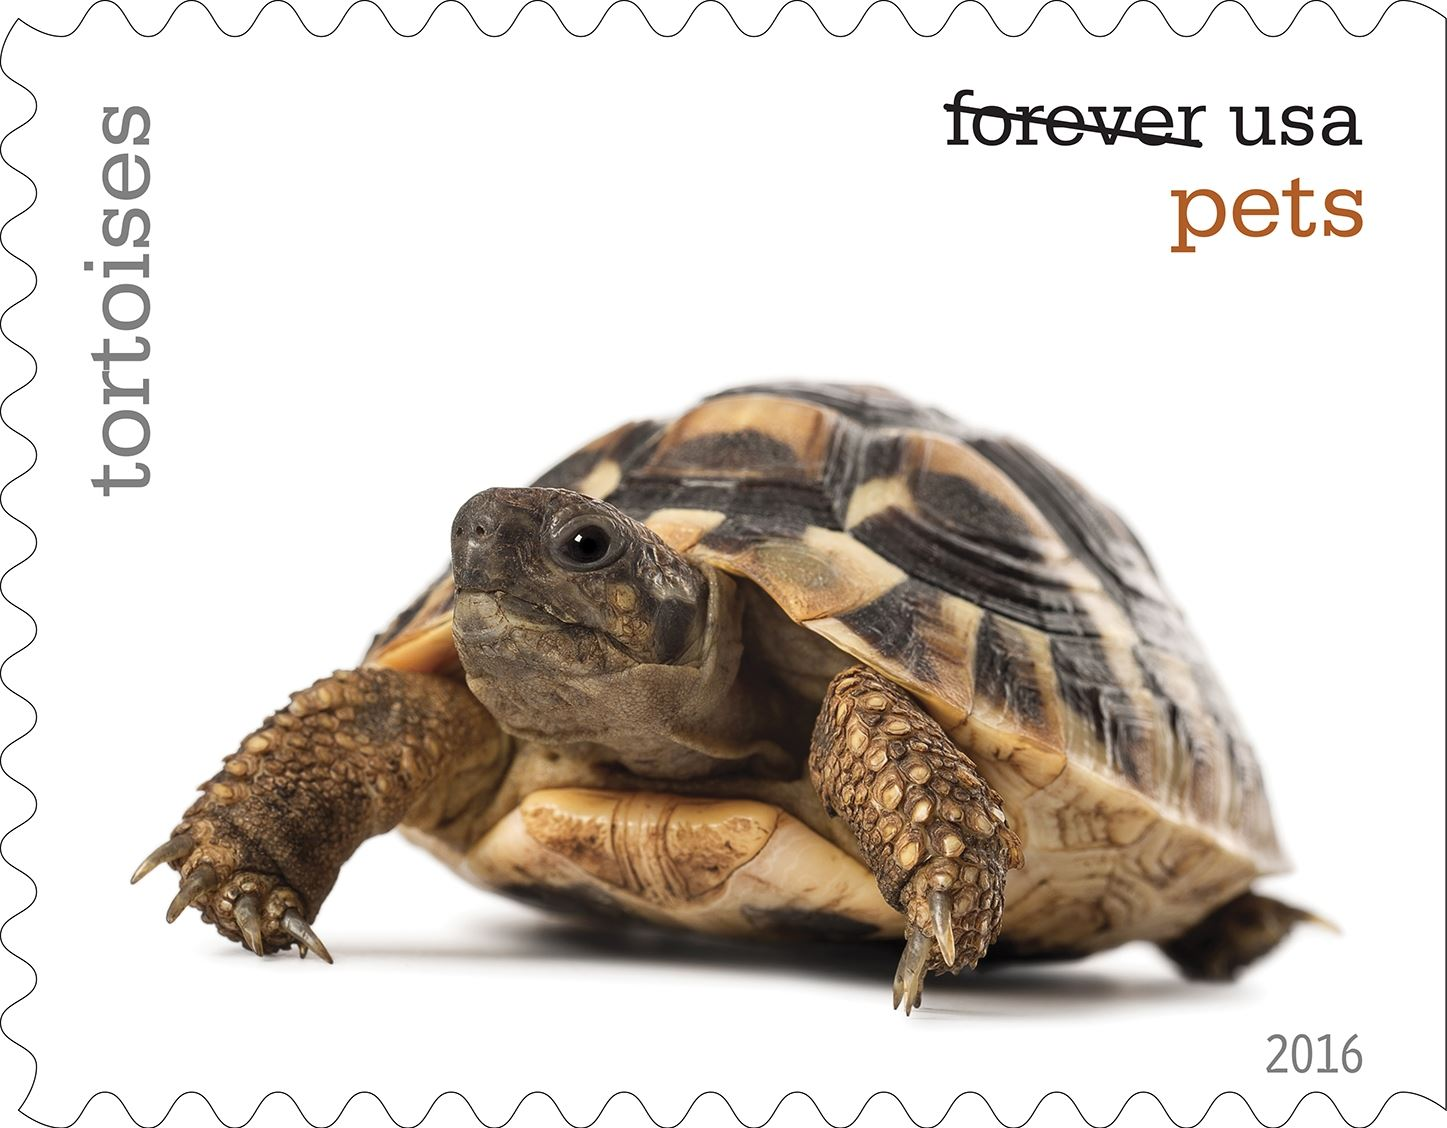 19-0_USPS16STA004t-9 Tortoises will be among the pets celebrated in an upcoming set of Forever stamps issued by the U.S. Postal Service.